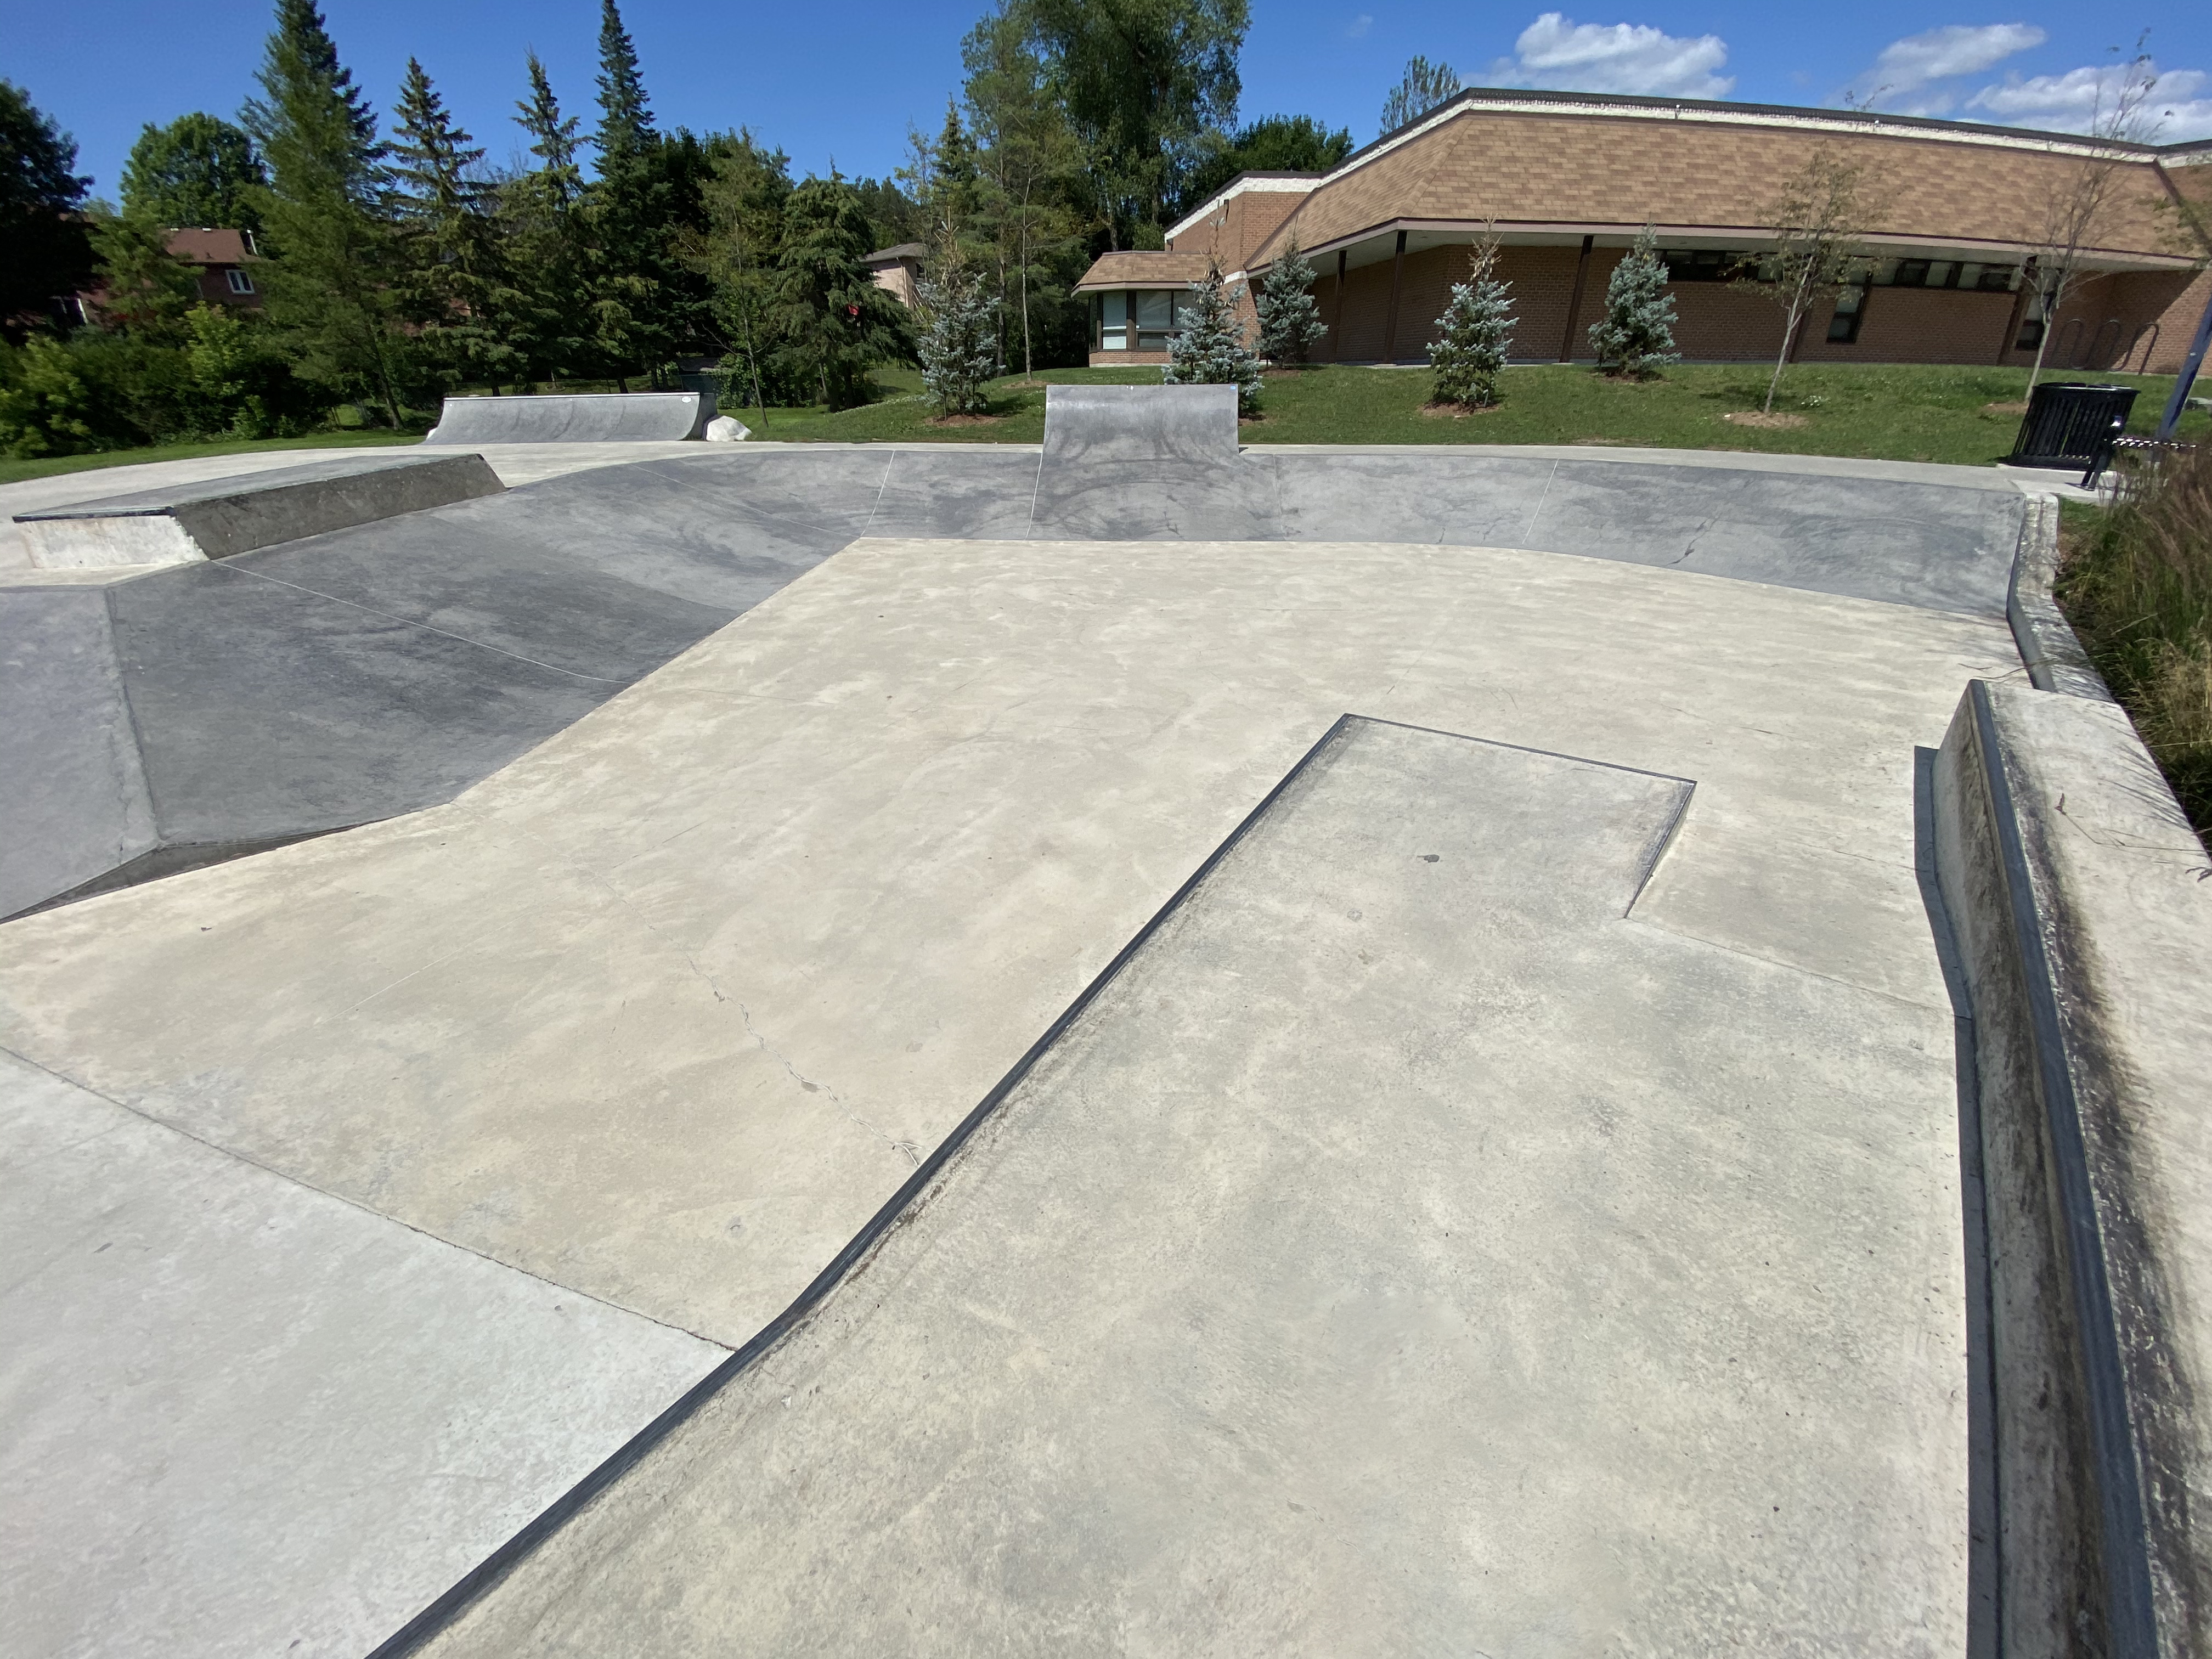 holland landing skatepark from the middle looking toward the entrance